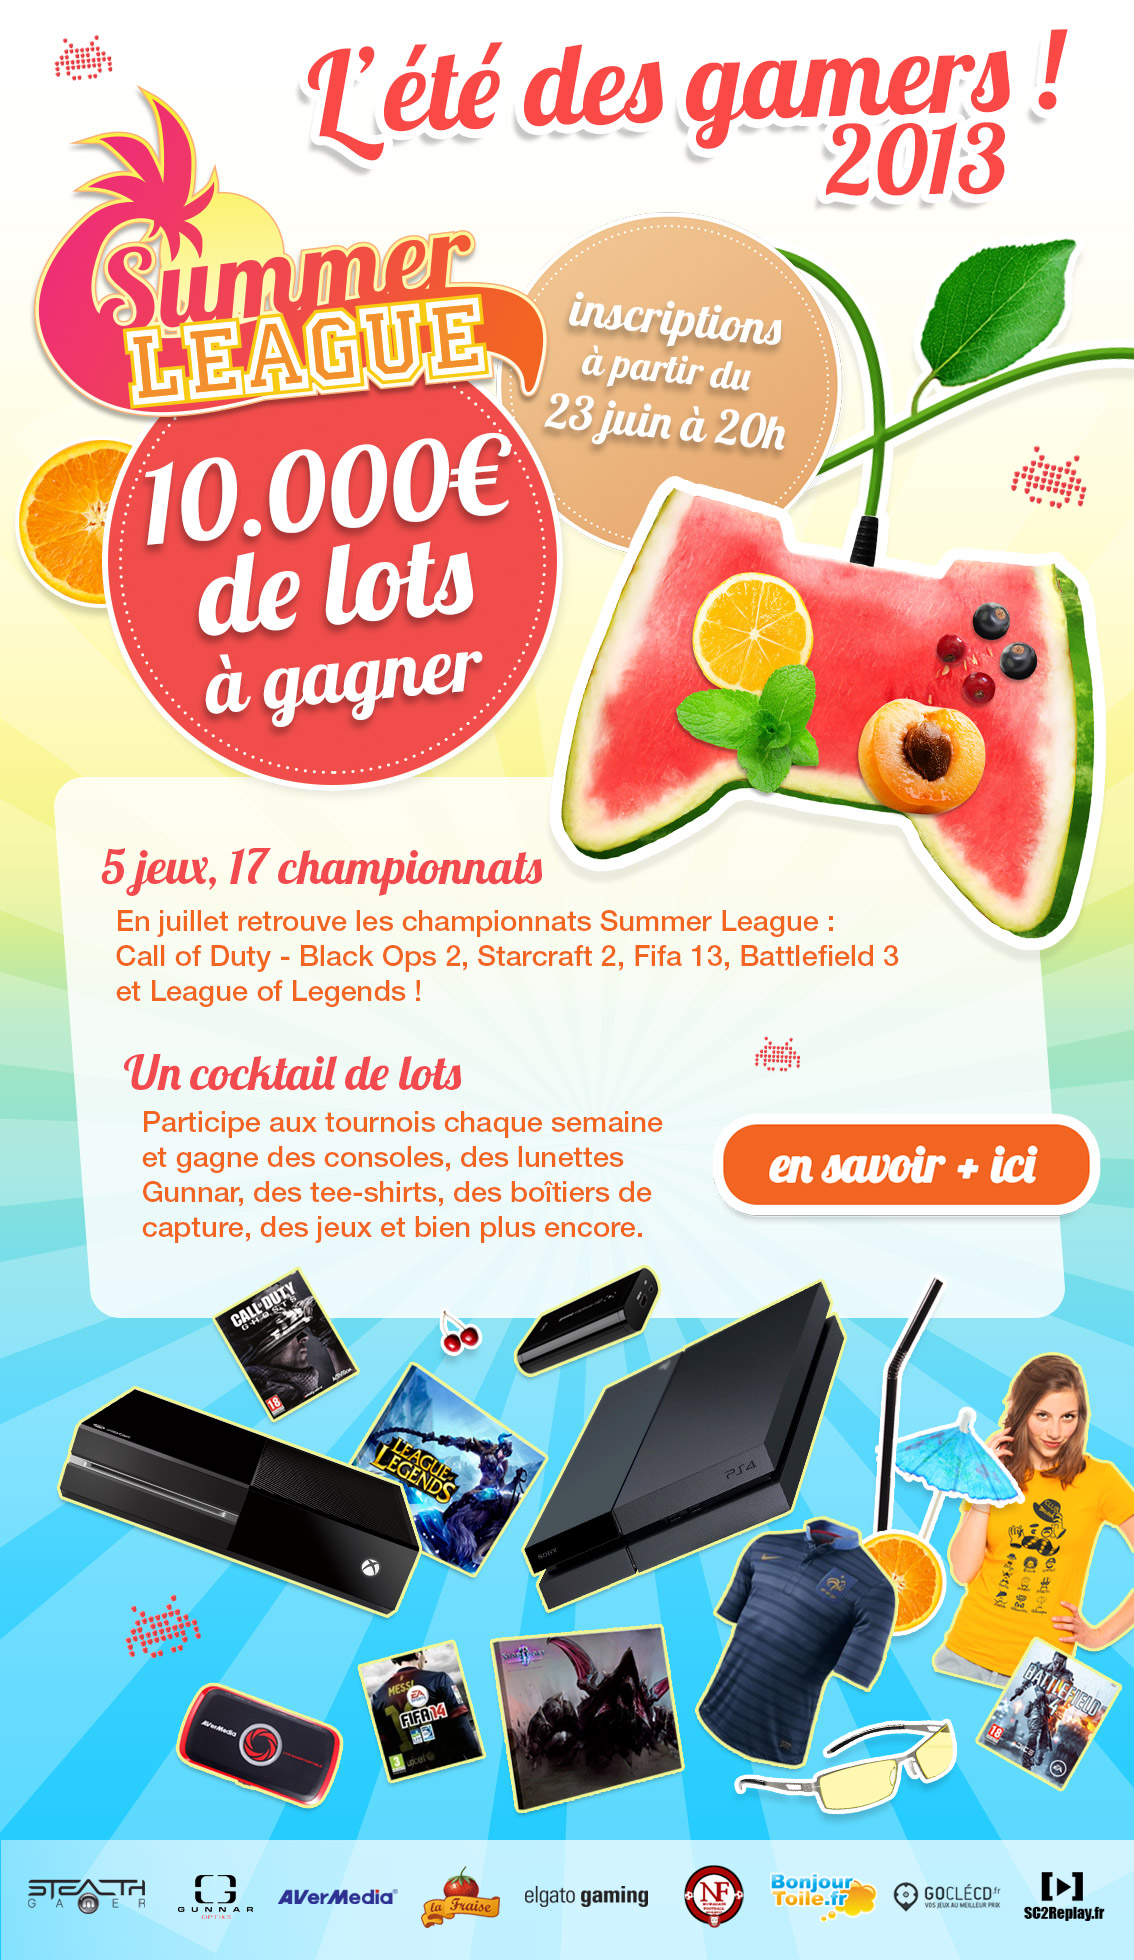 Summer league 2013 de Glory4Gamers